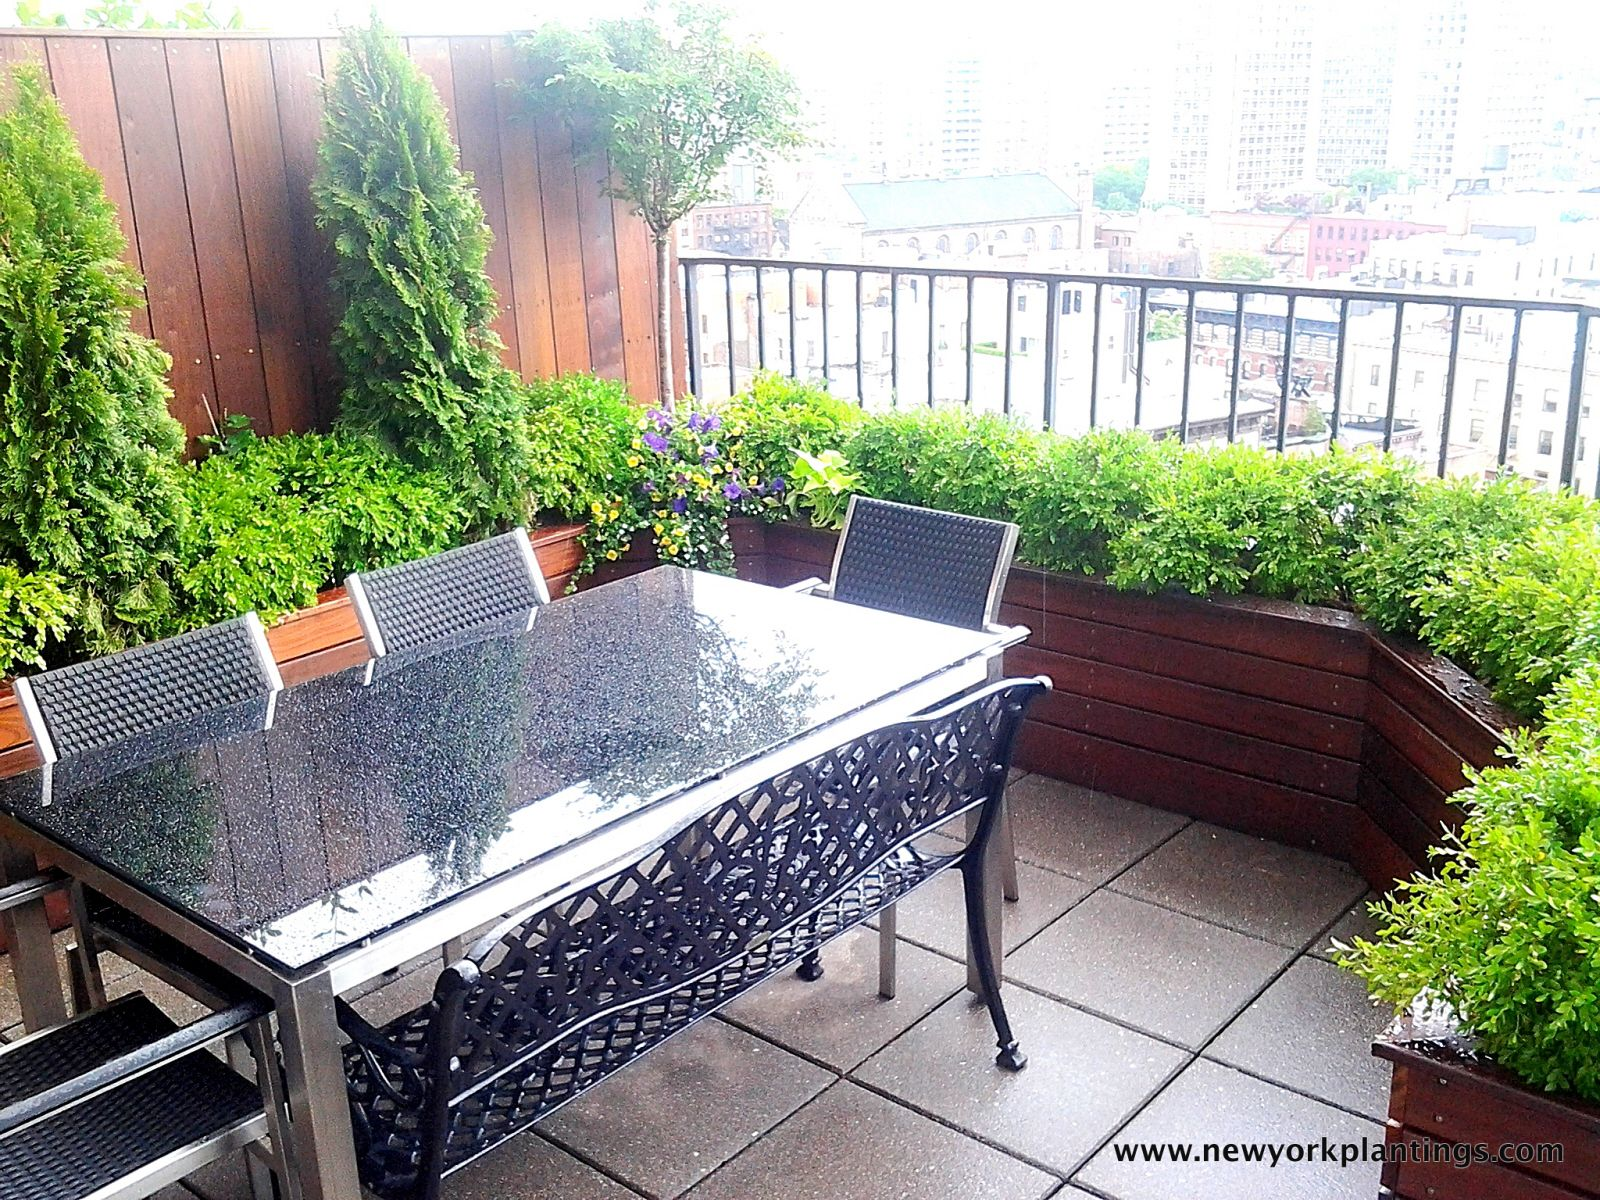 Container Garden Design Property nyc roof garden: terrace composite deck, planter boxes, container